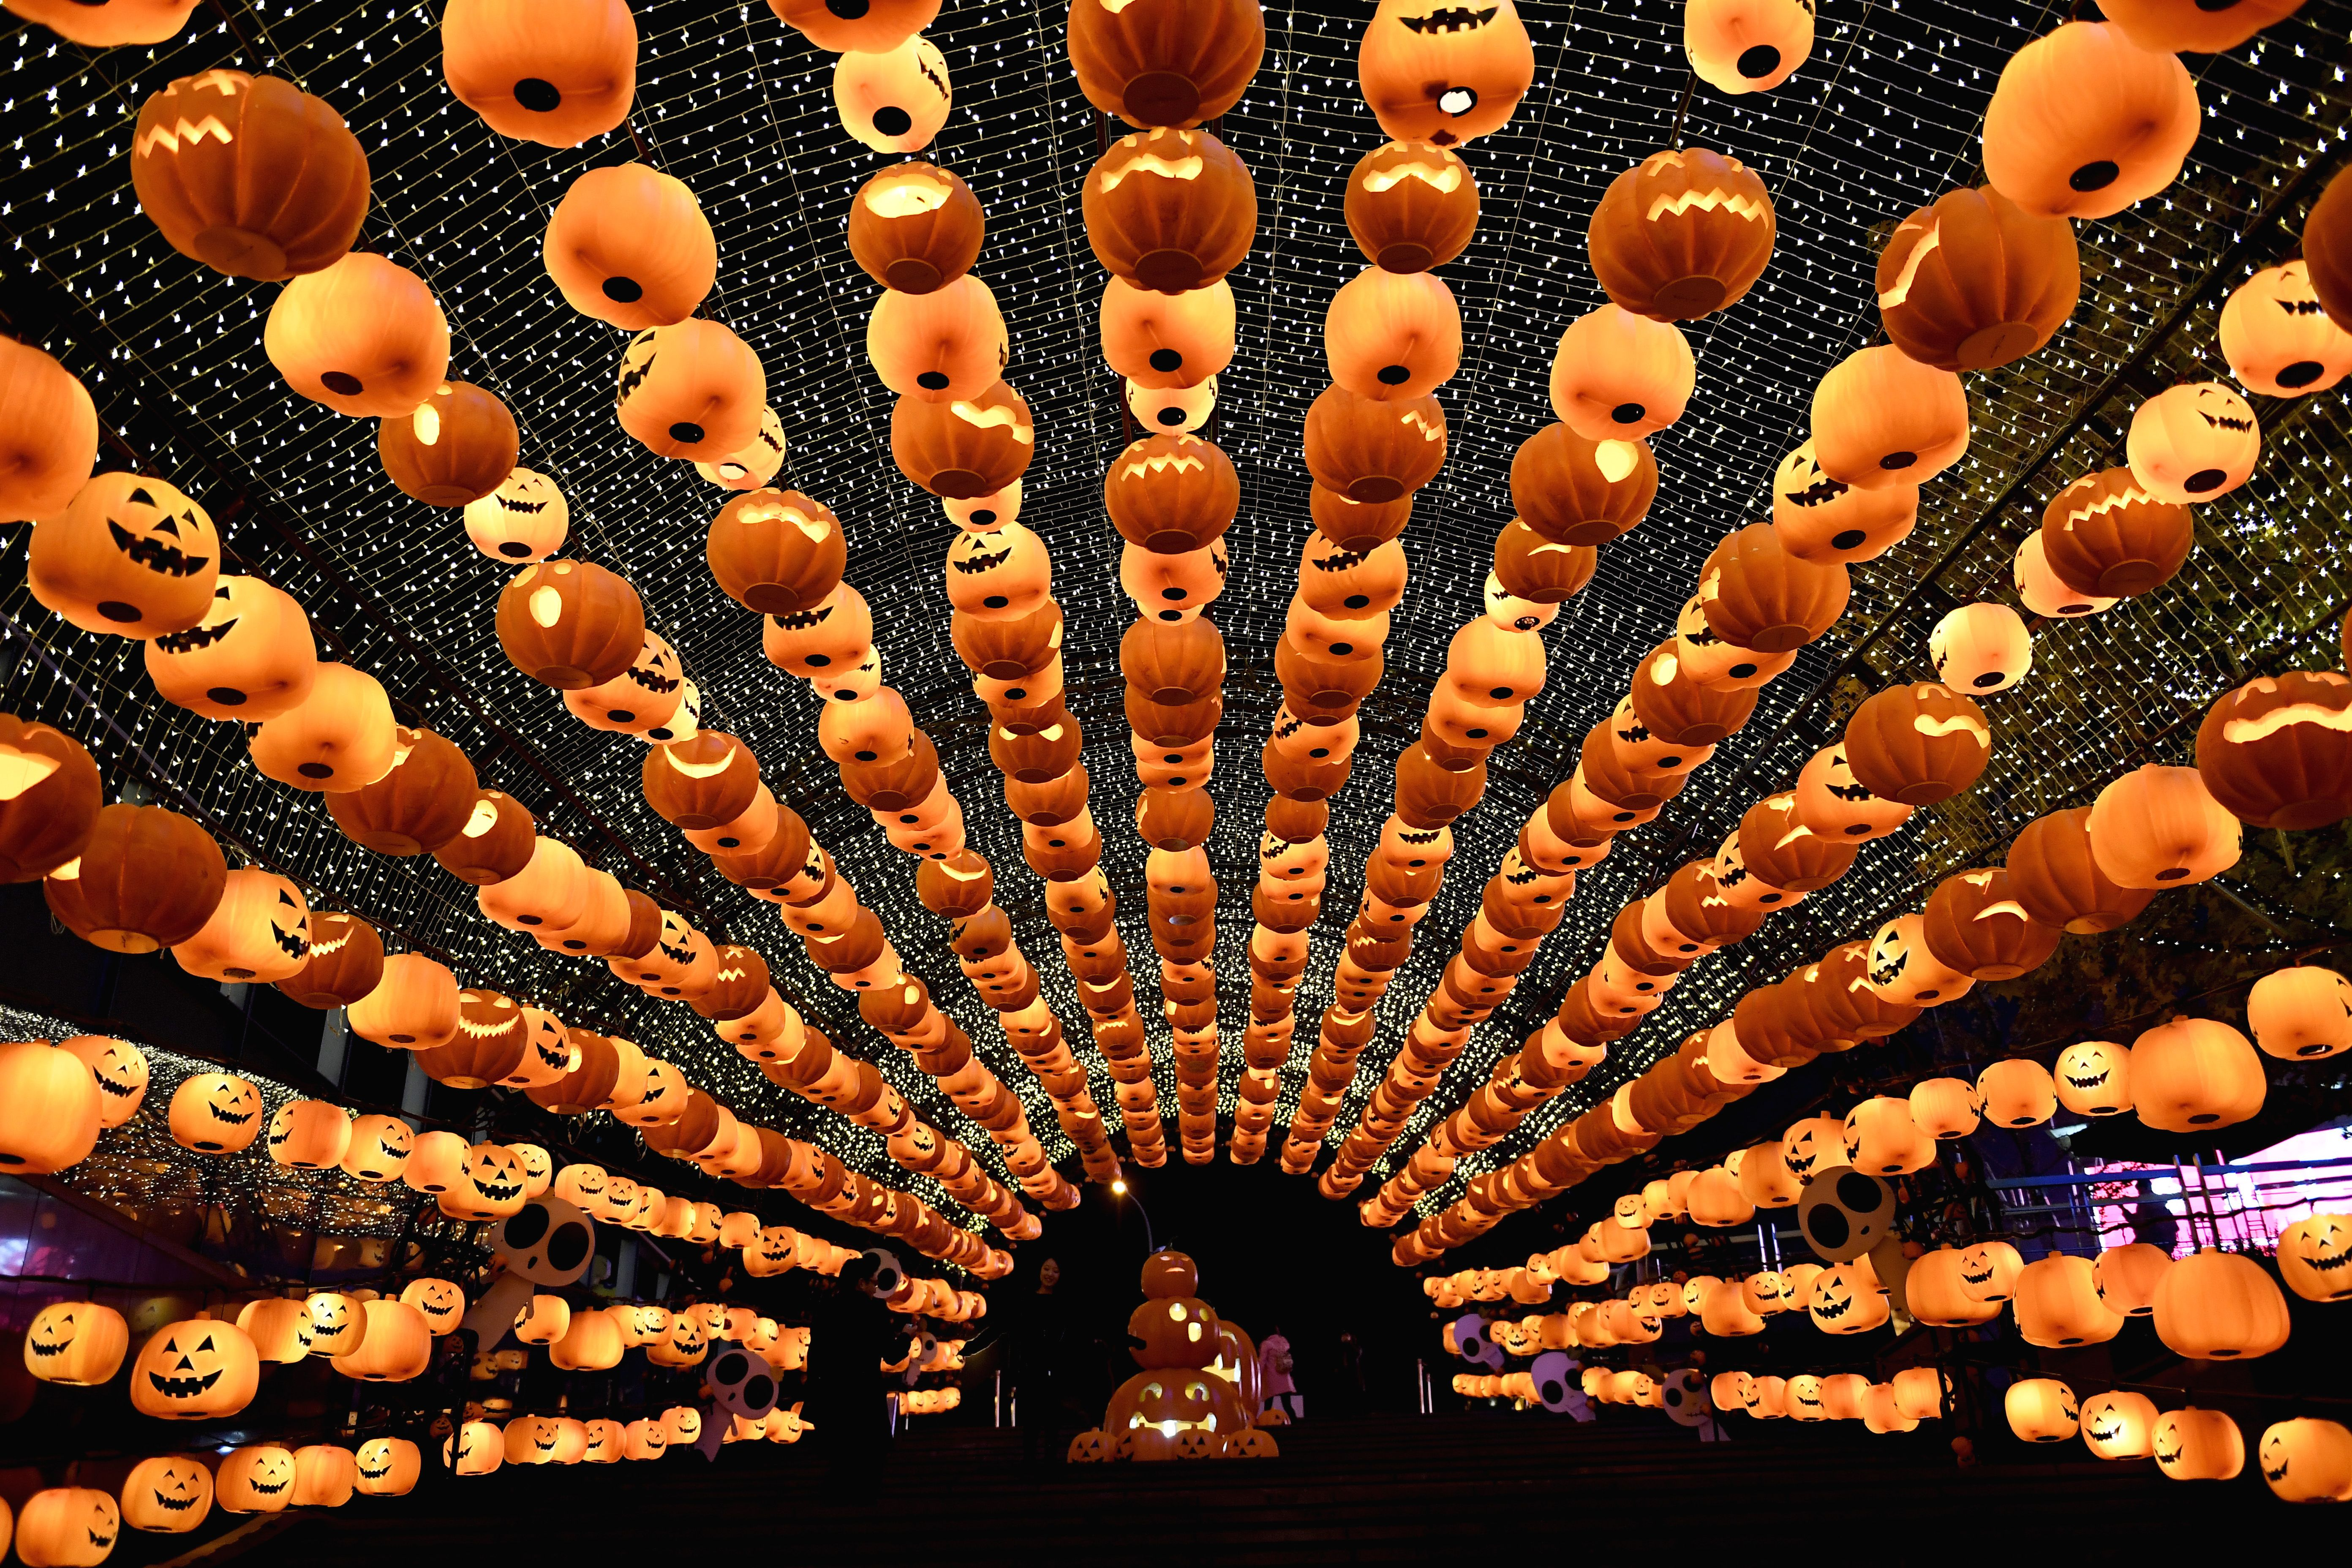 TOPSHOT-CHINA-FESTIVAL-HALLOWEEN